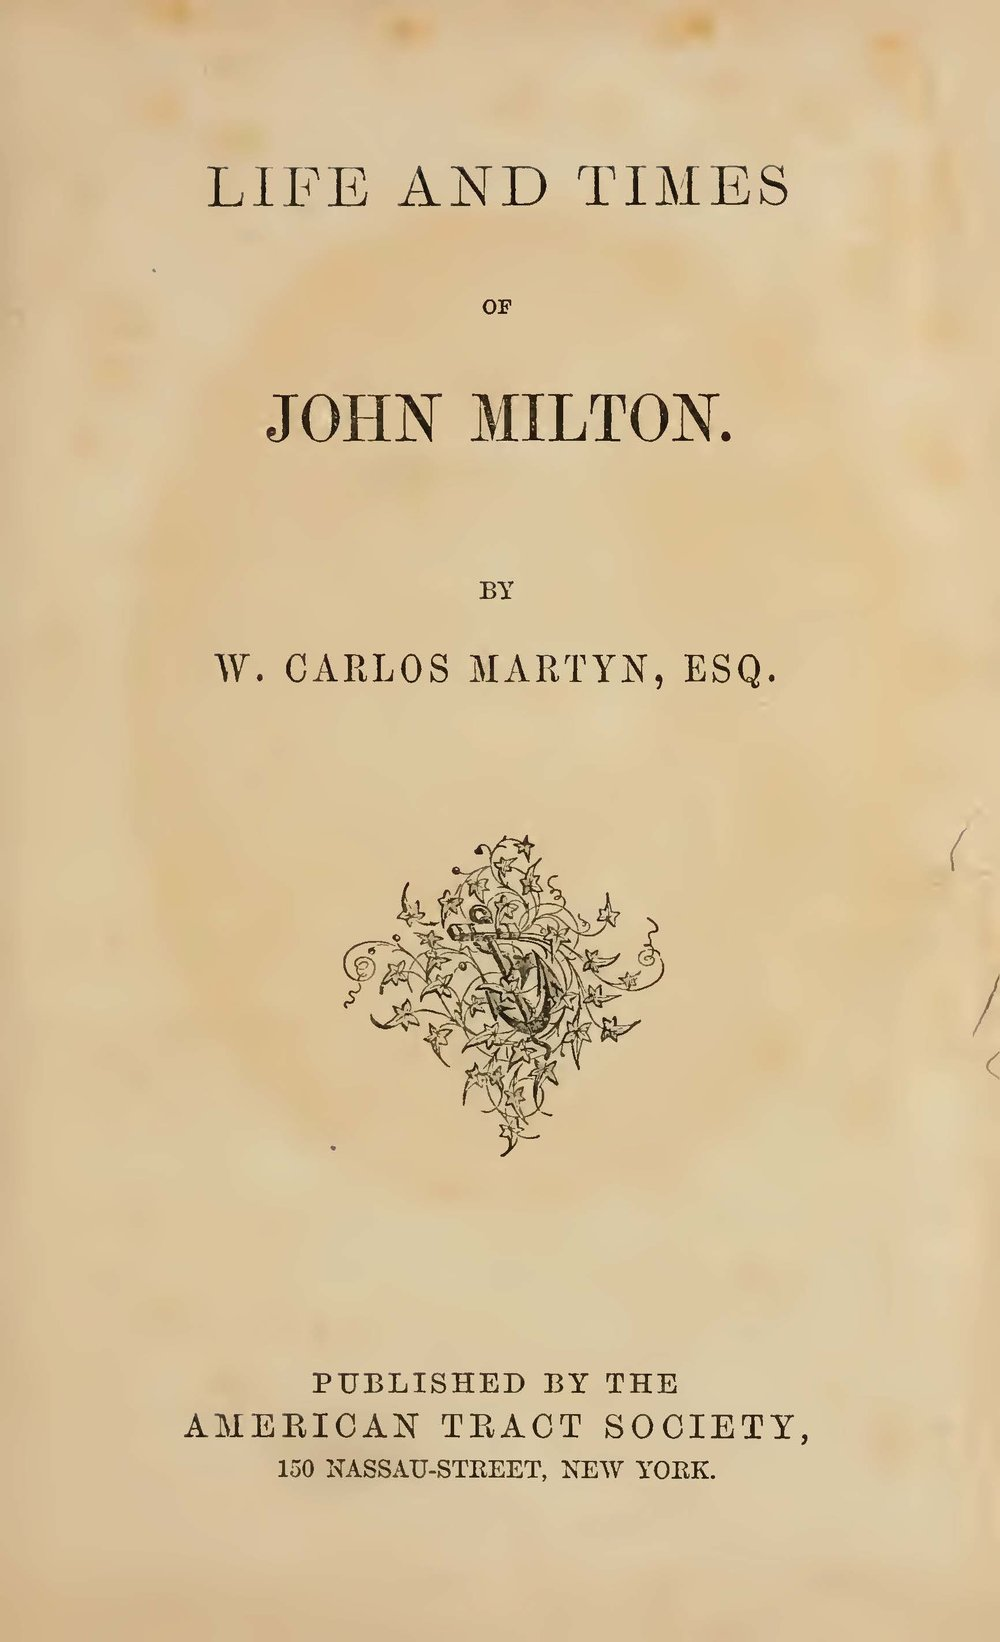 Martyn, William Carlos, The Life and Times of John Milton Title Page.jpg